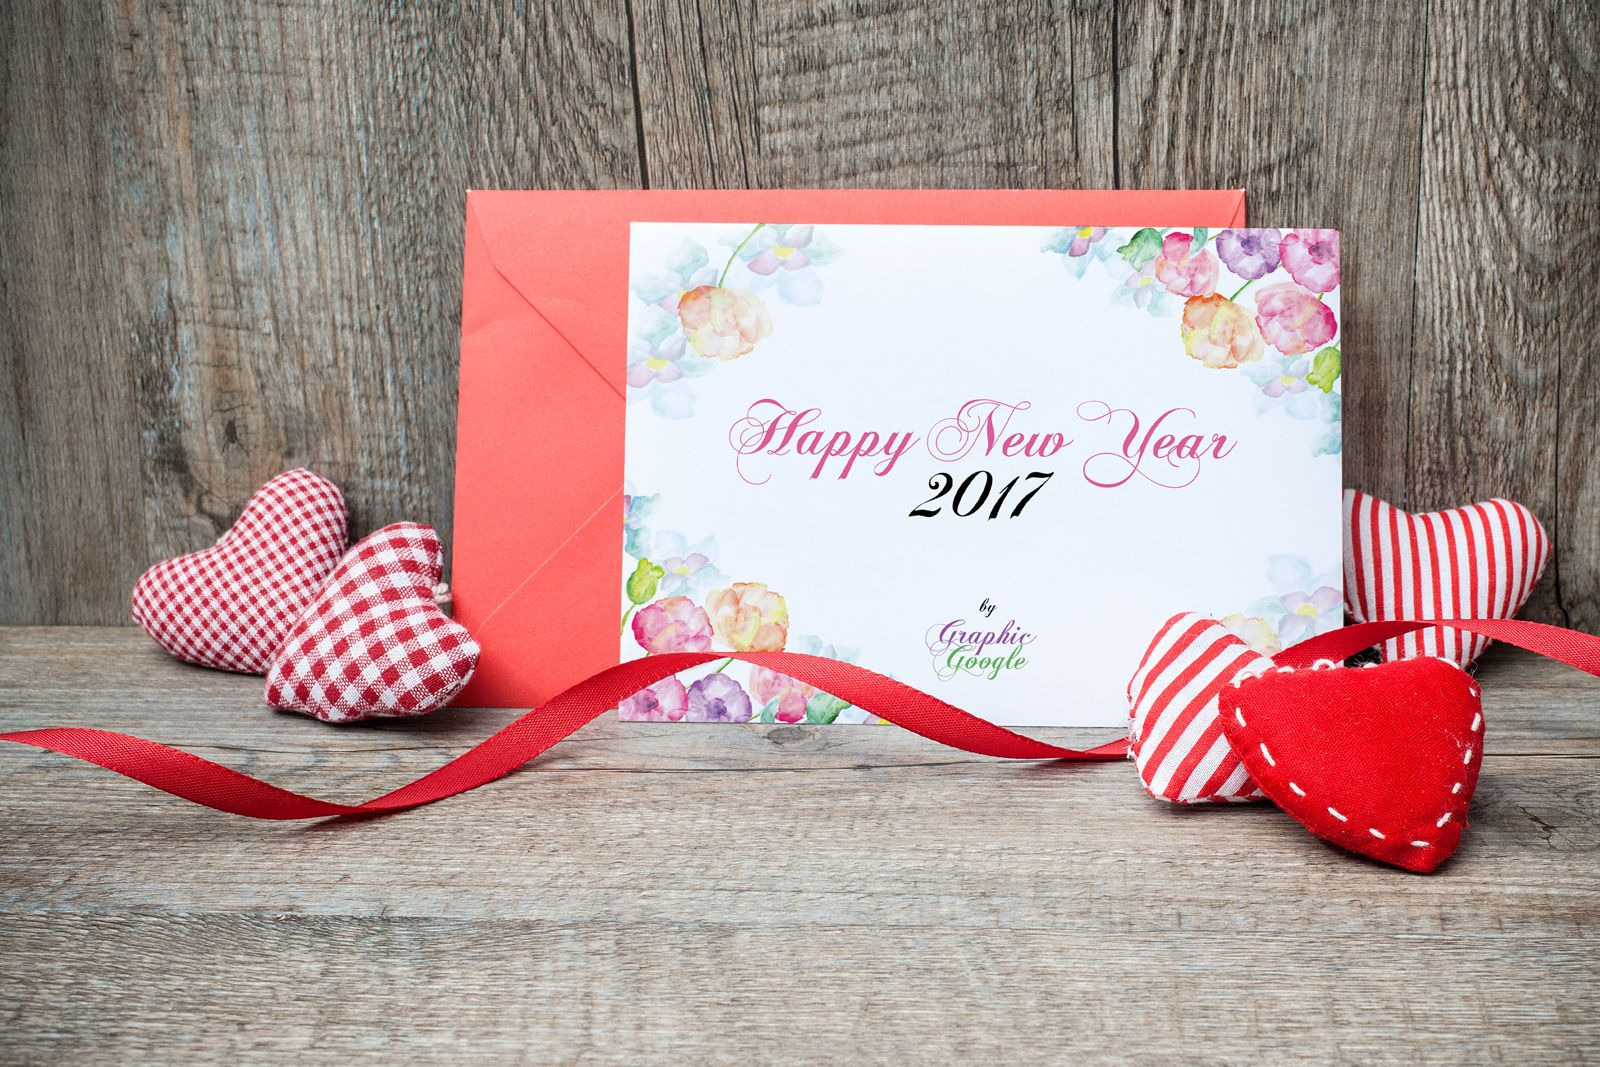 Free New Year Greeting Card Mock Up Psd 7 99 Mb Graphic Google Free Photoshop Mockup Psd New Greeting Card Template Card Template Design Mockup Free